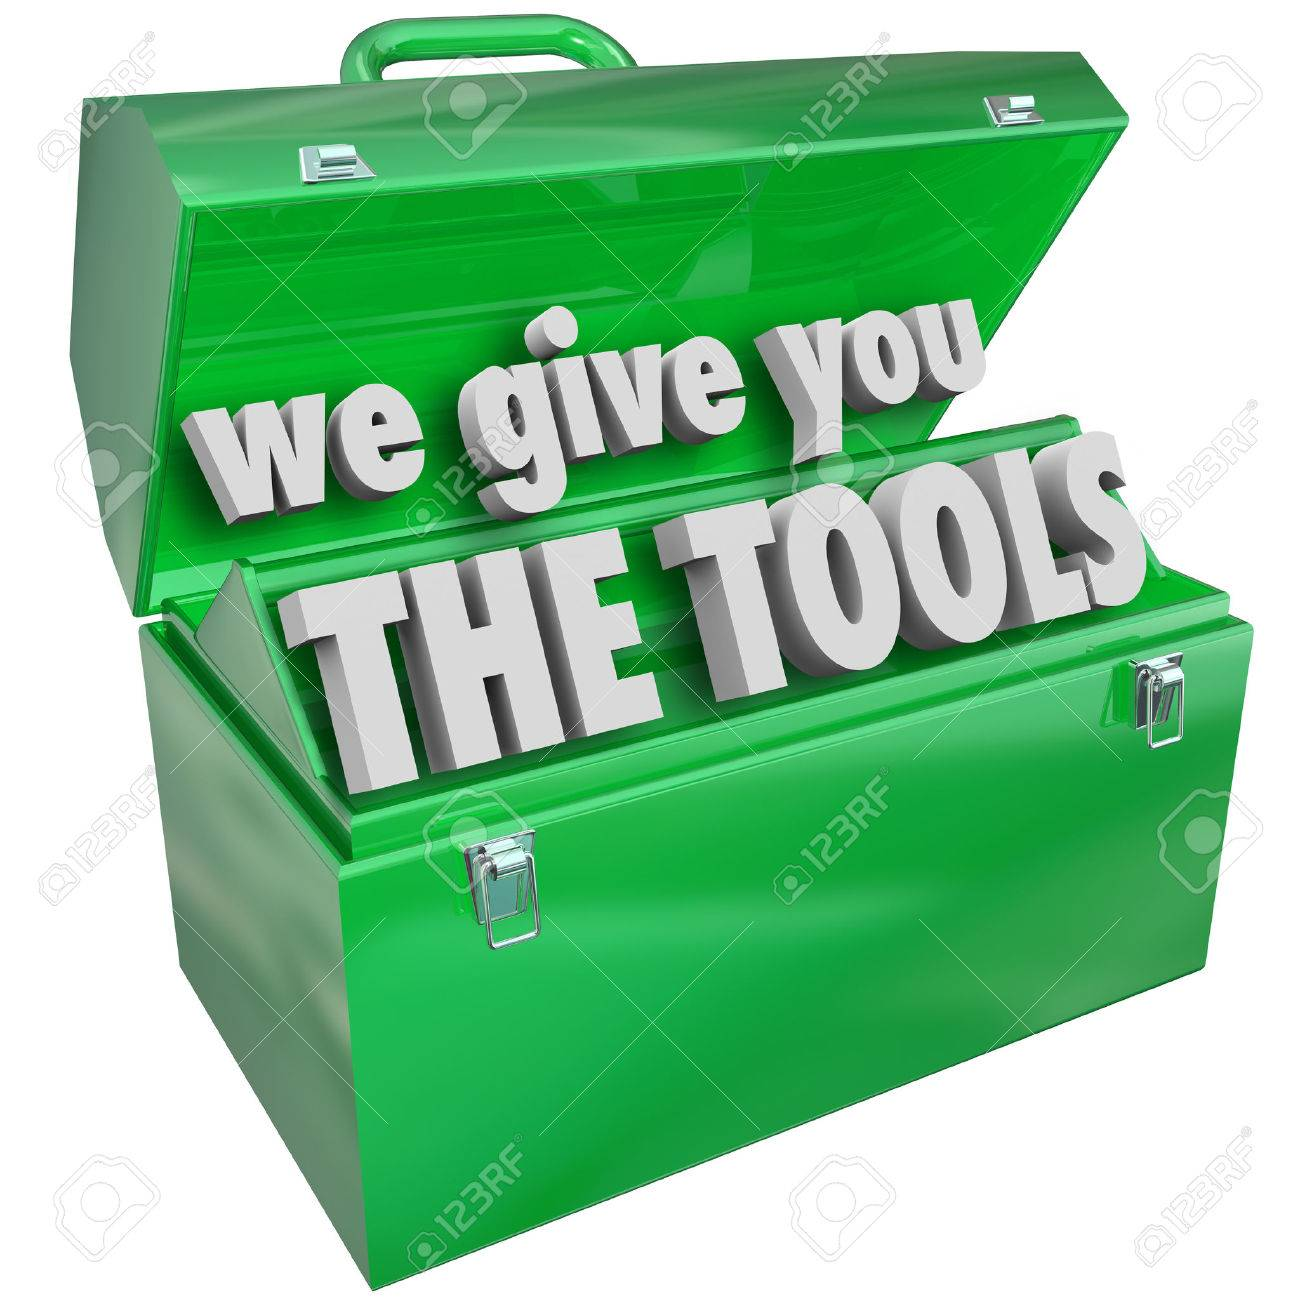 skill set stock photos pictures royalty skill set images skill set we give you the tools green metal toolbox words to illustrate skills and